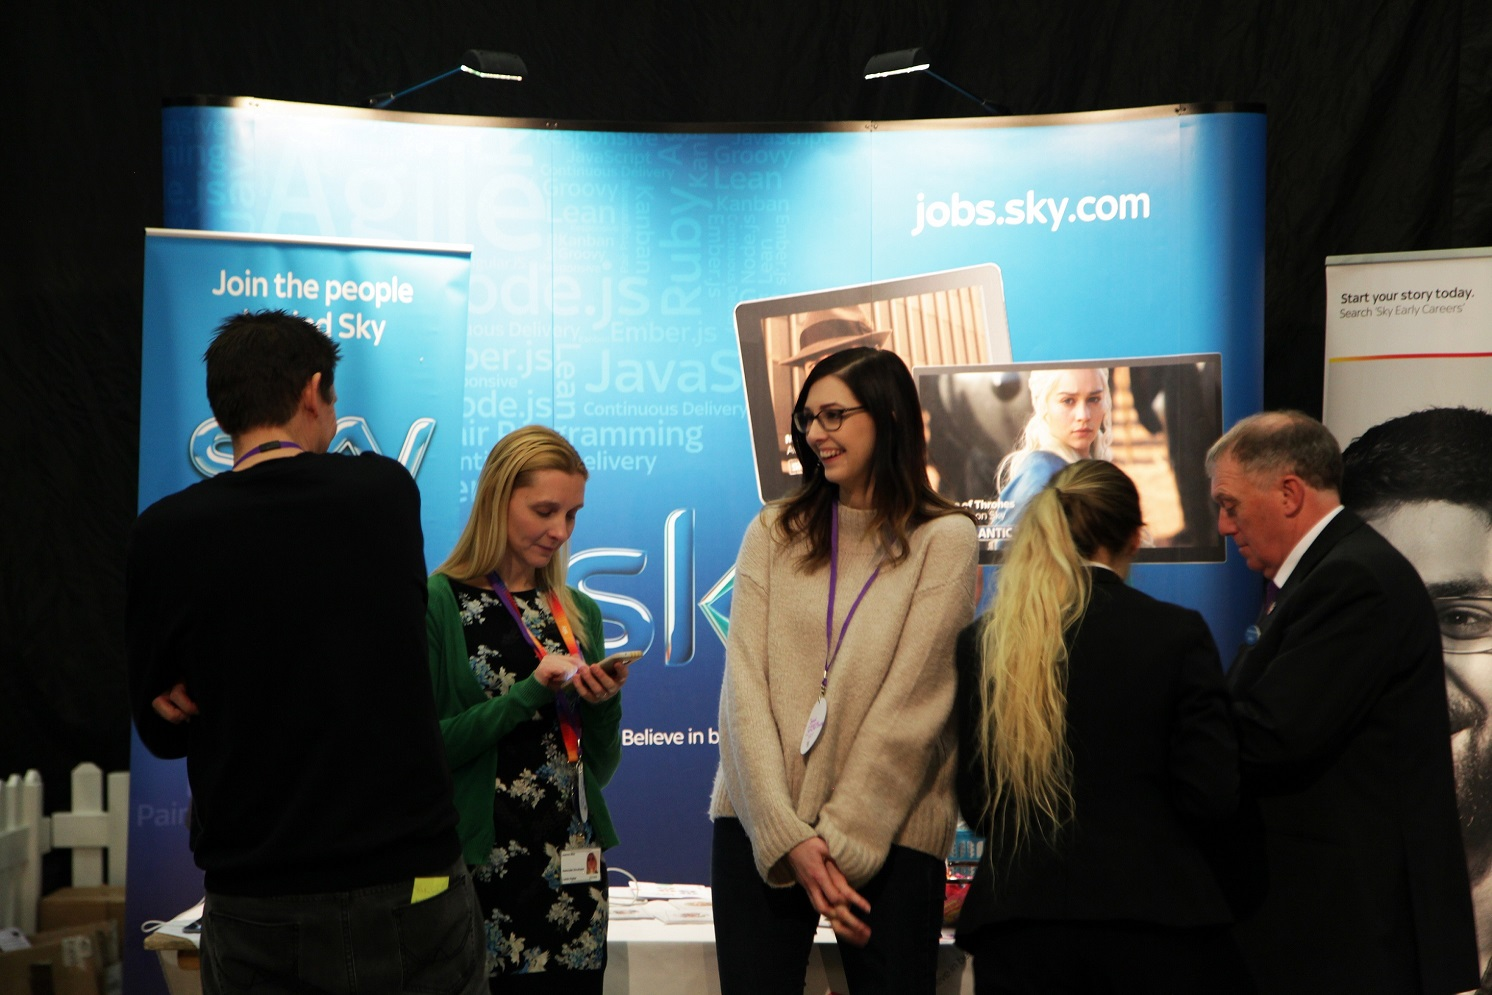 Sky in demand at Leeds Digital Job Fair 4.0